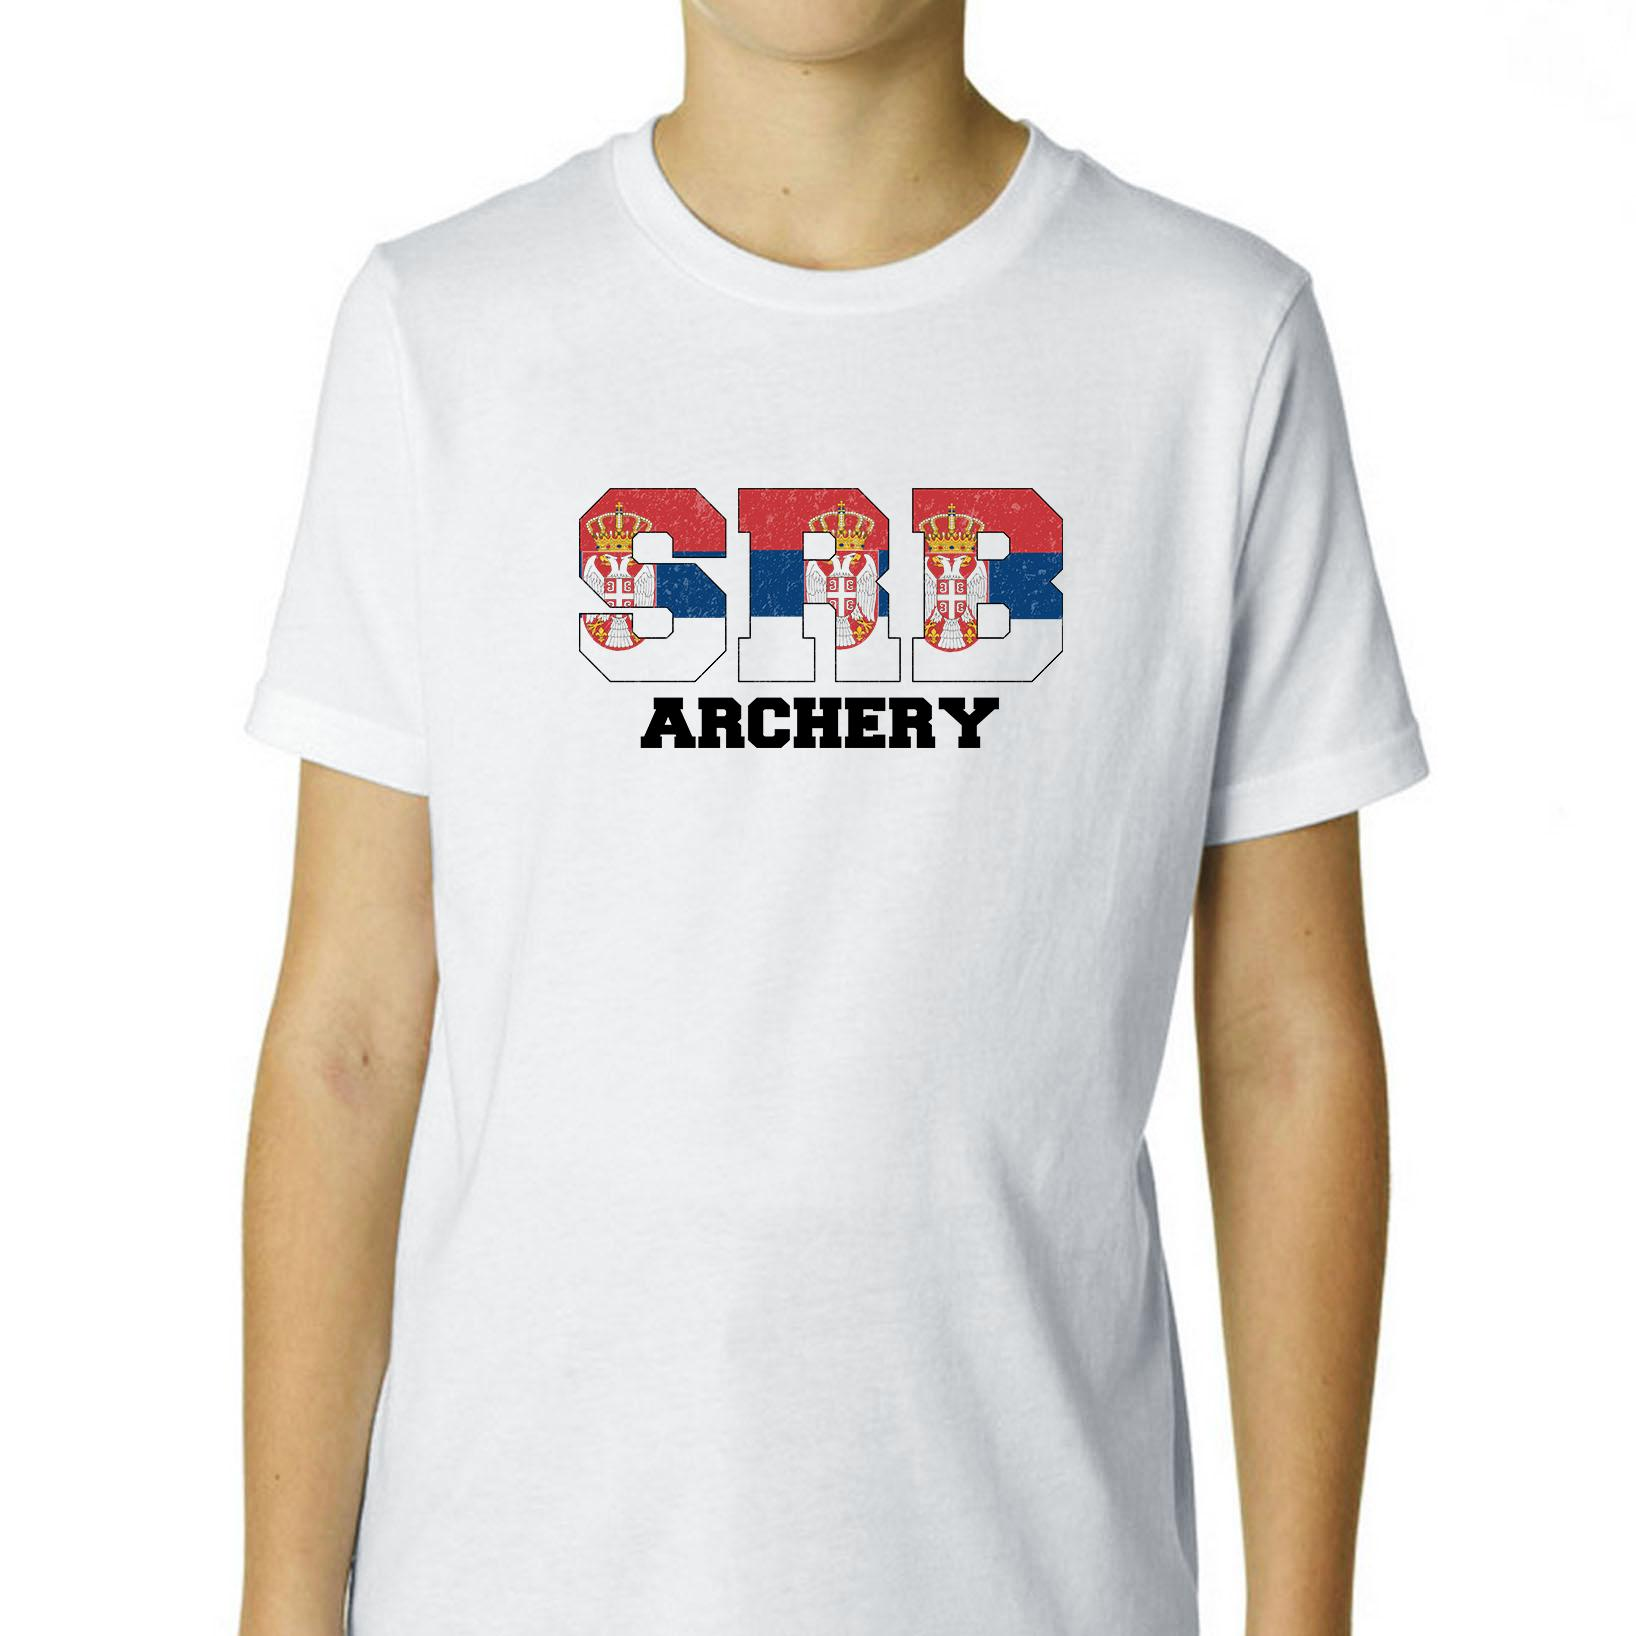 Serbia Archery - Olympic Games - Rio - Flag Boy's Cotton Youth T-Shirt